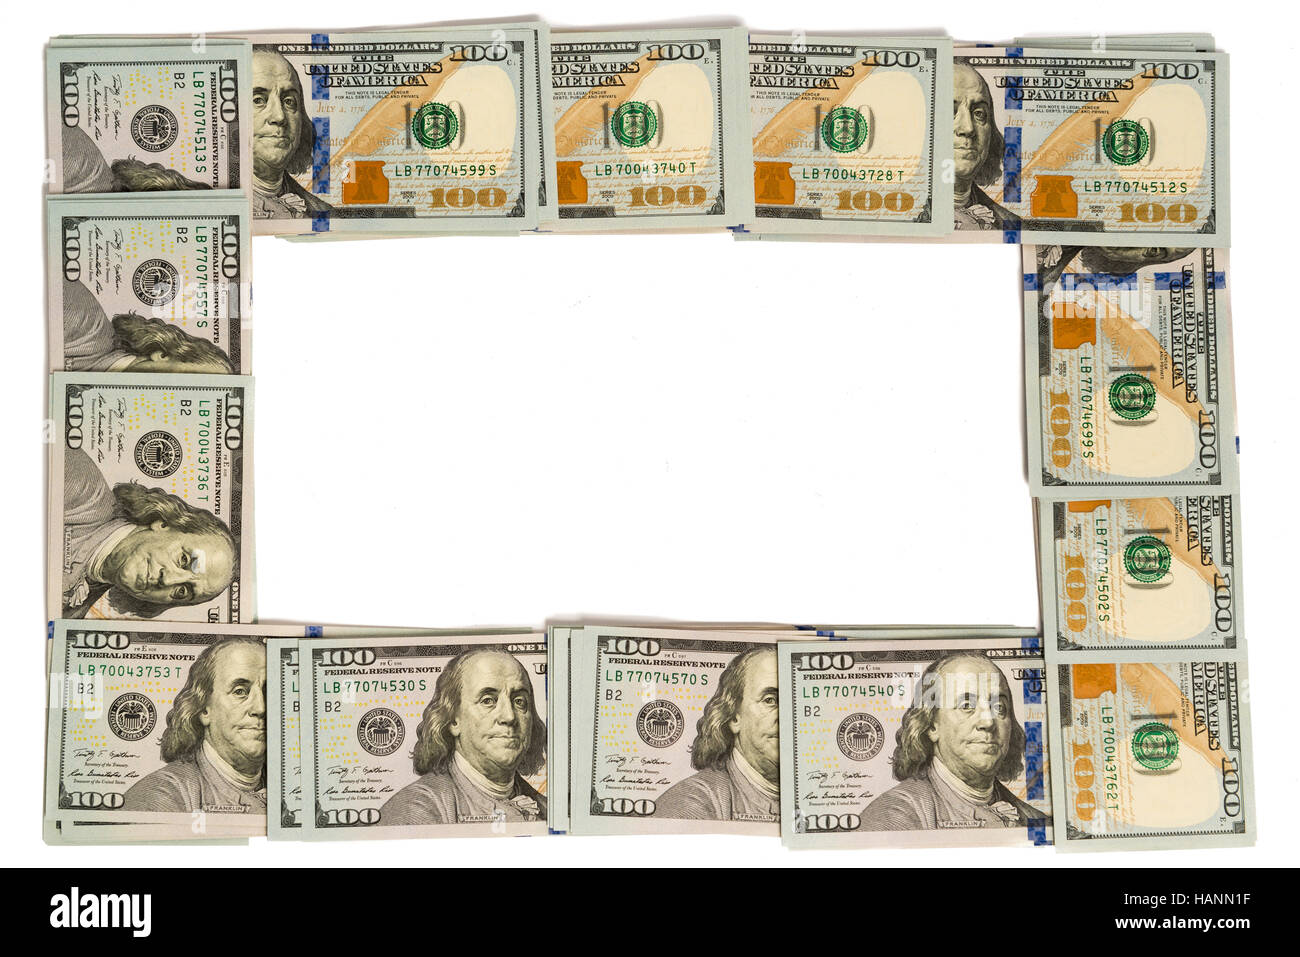 Mockup frame made of hundred dollar banknotes isolated on white with copy space - Stock Image